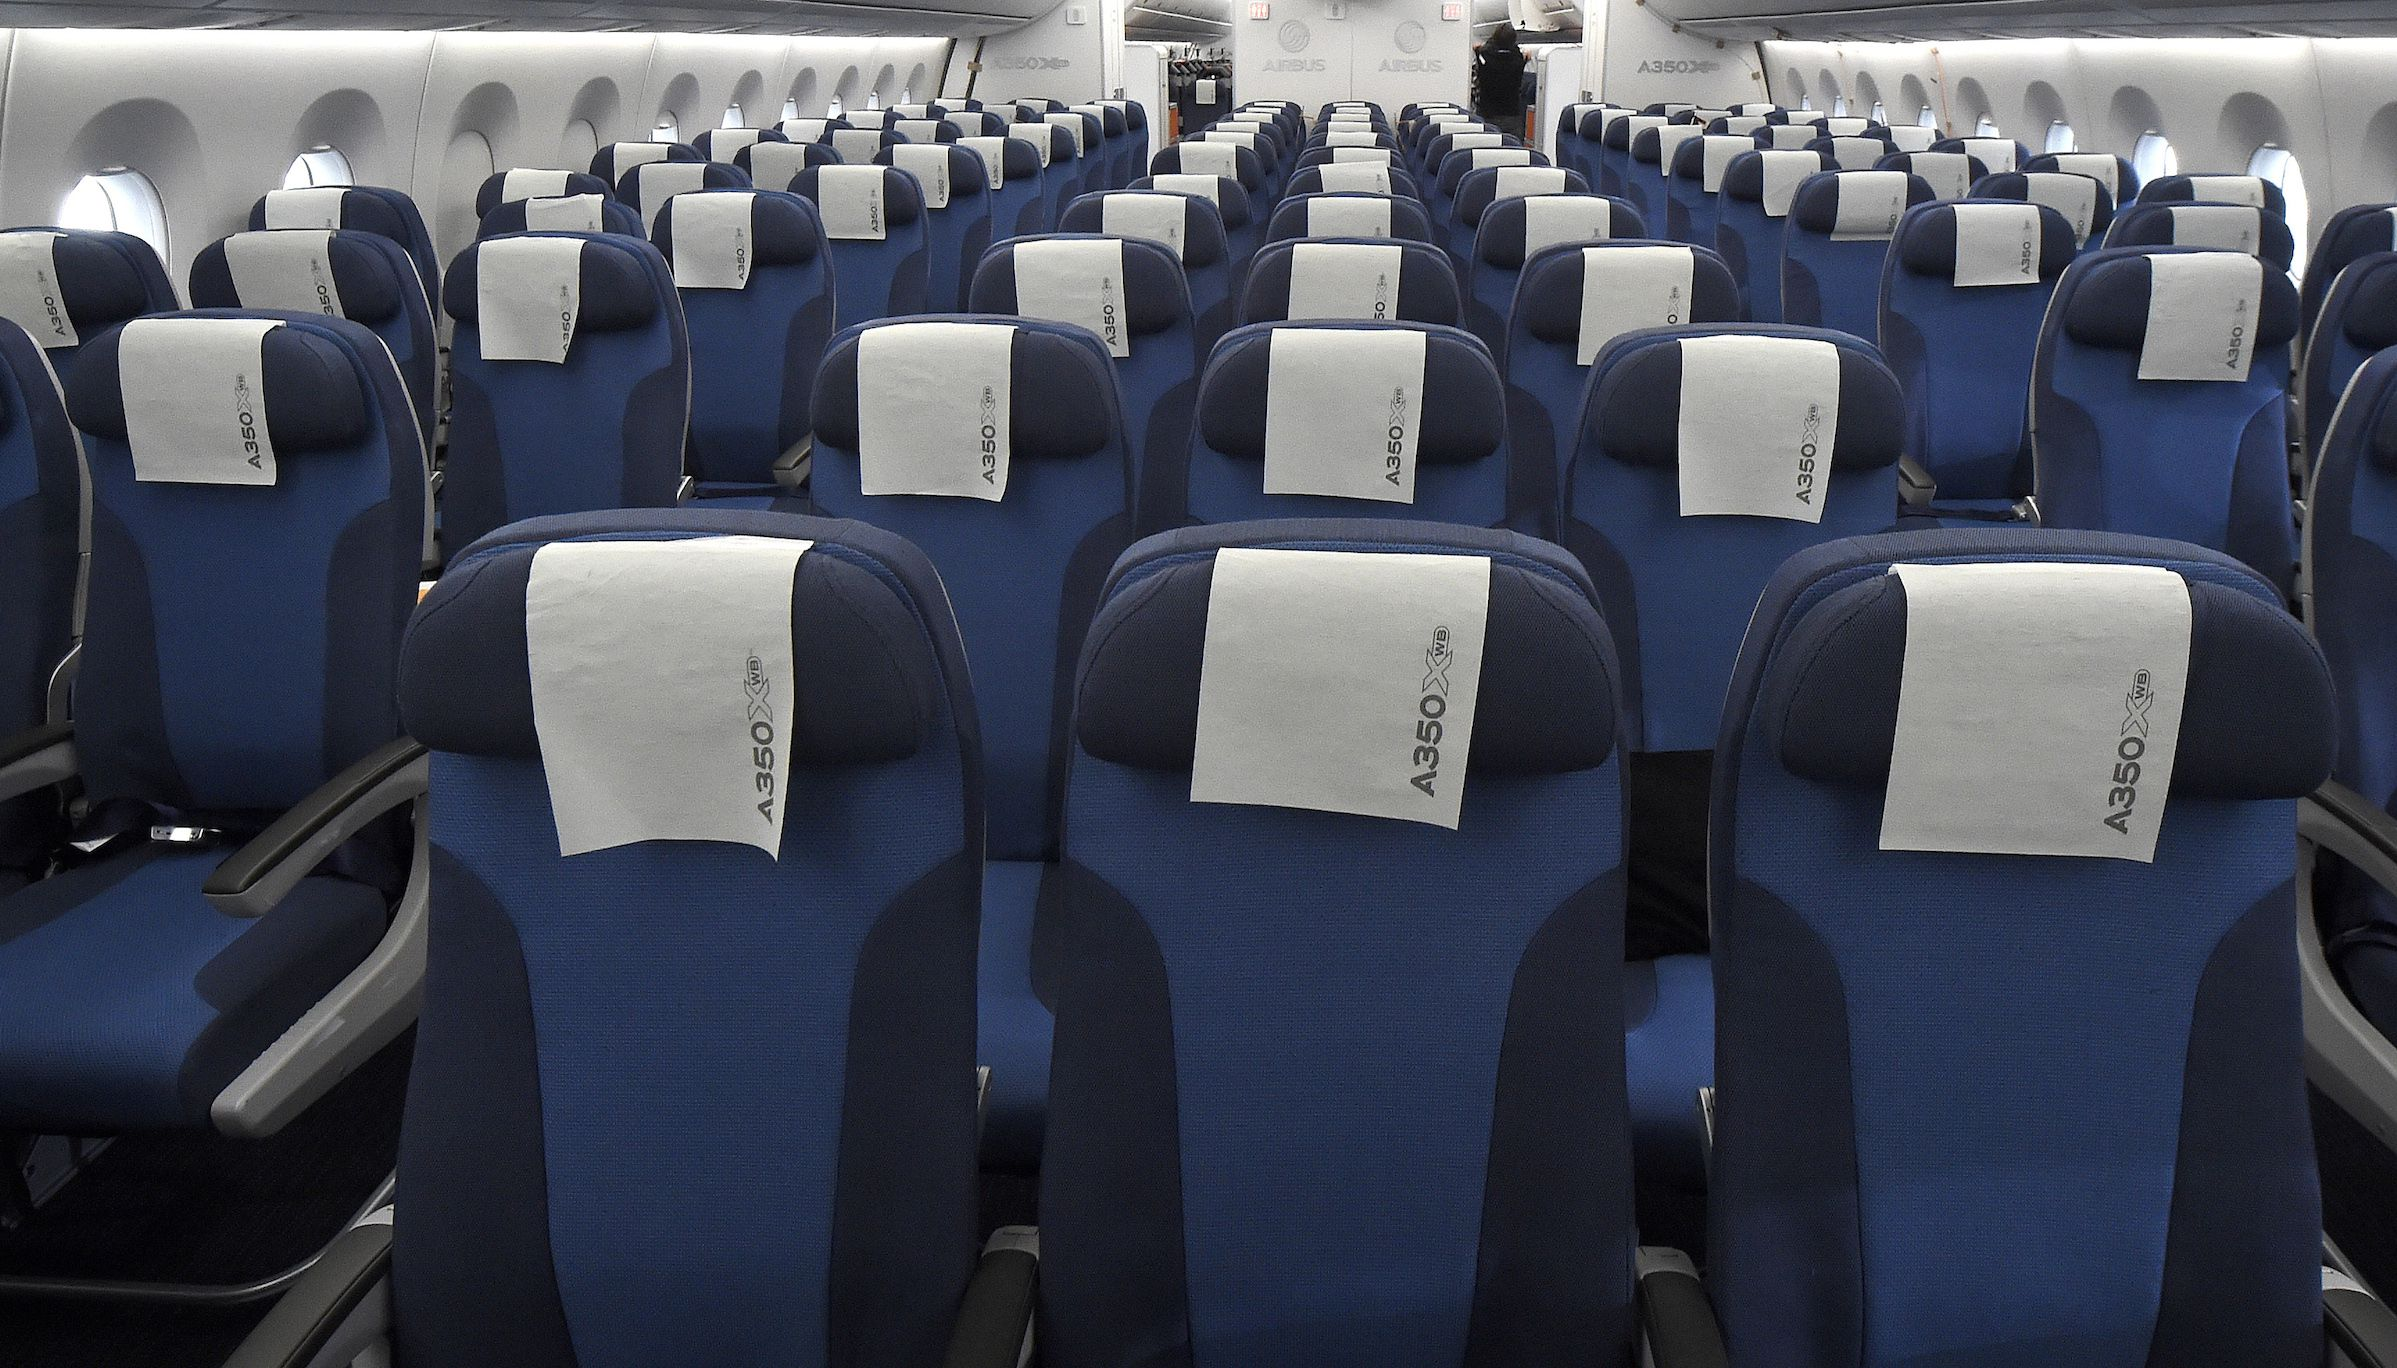 The Terrible Claustrophobic Airplane Seat Redesign That